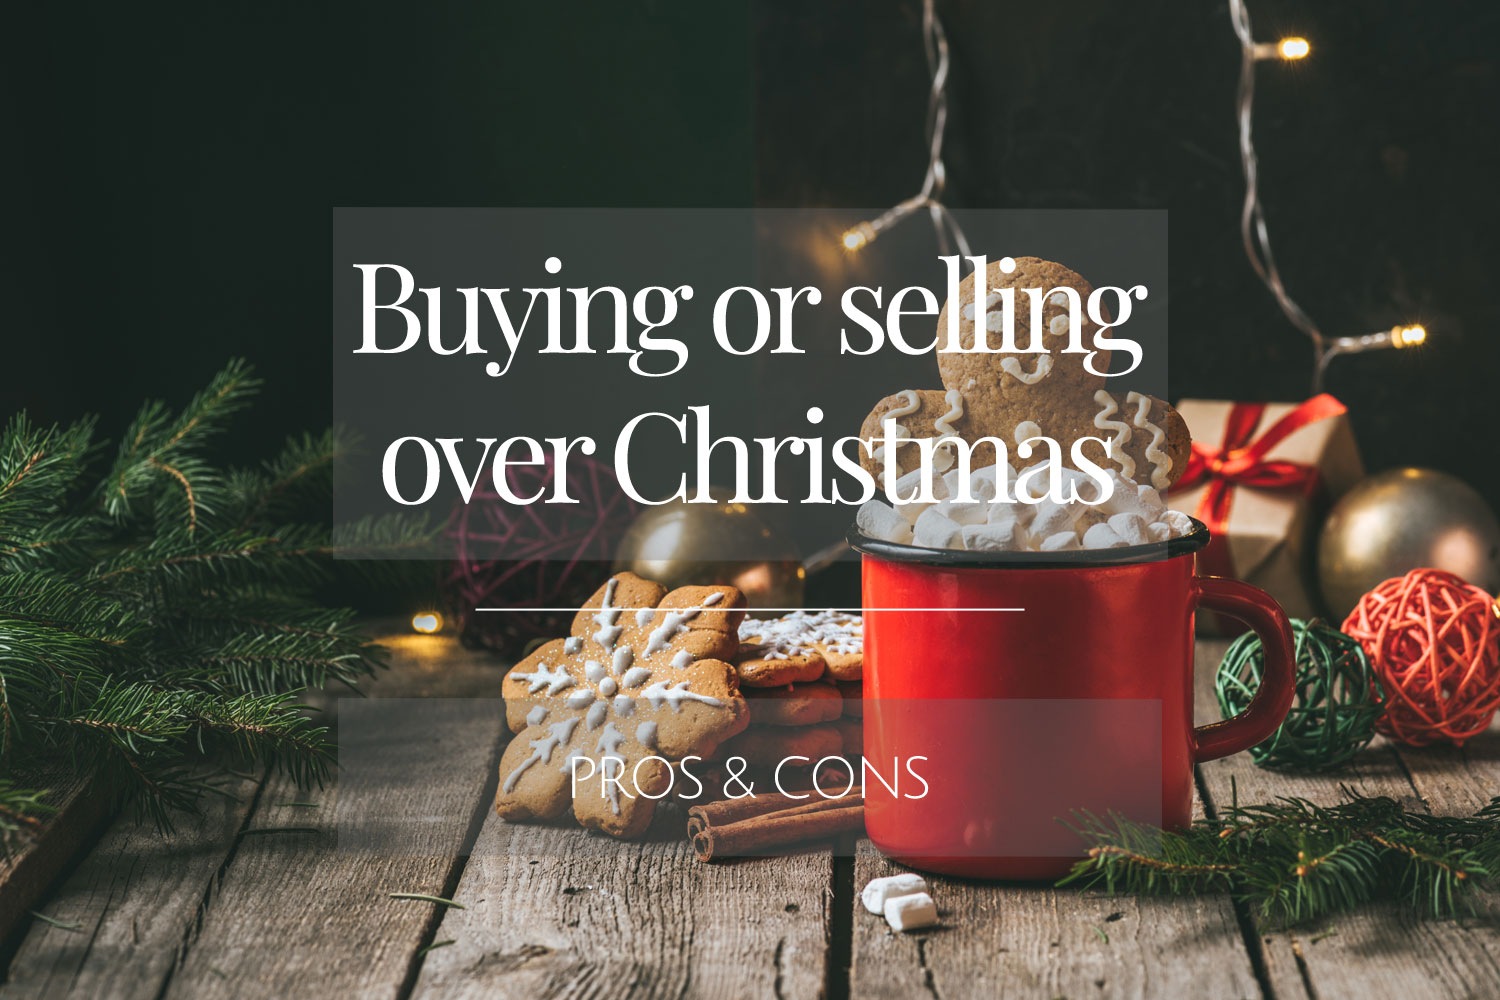 Buying or selling over the Christmas period